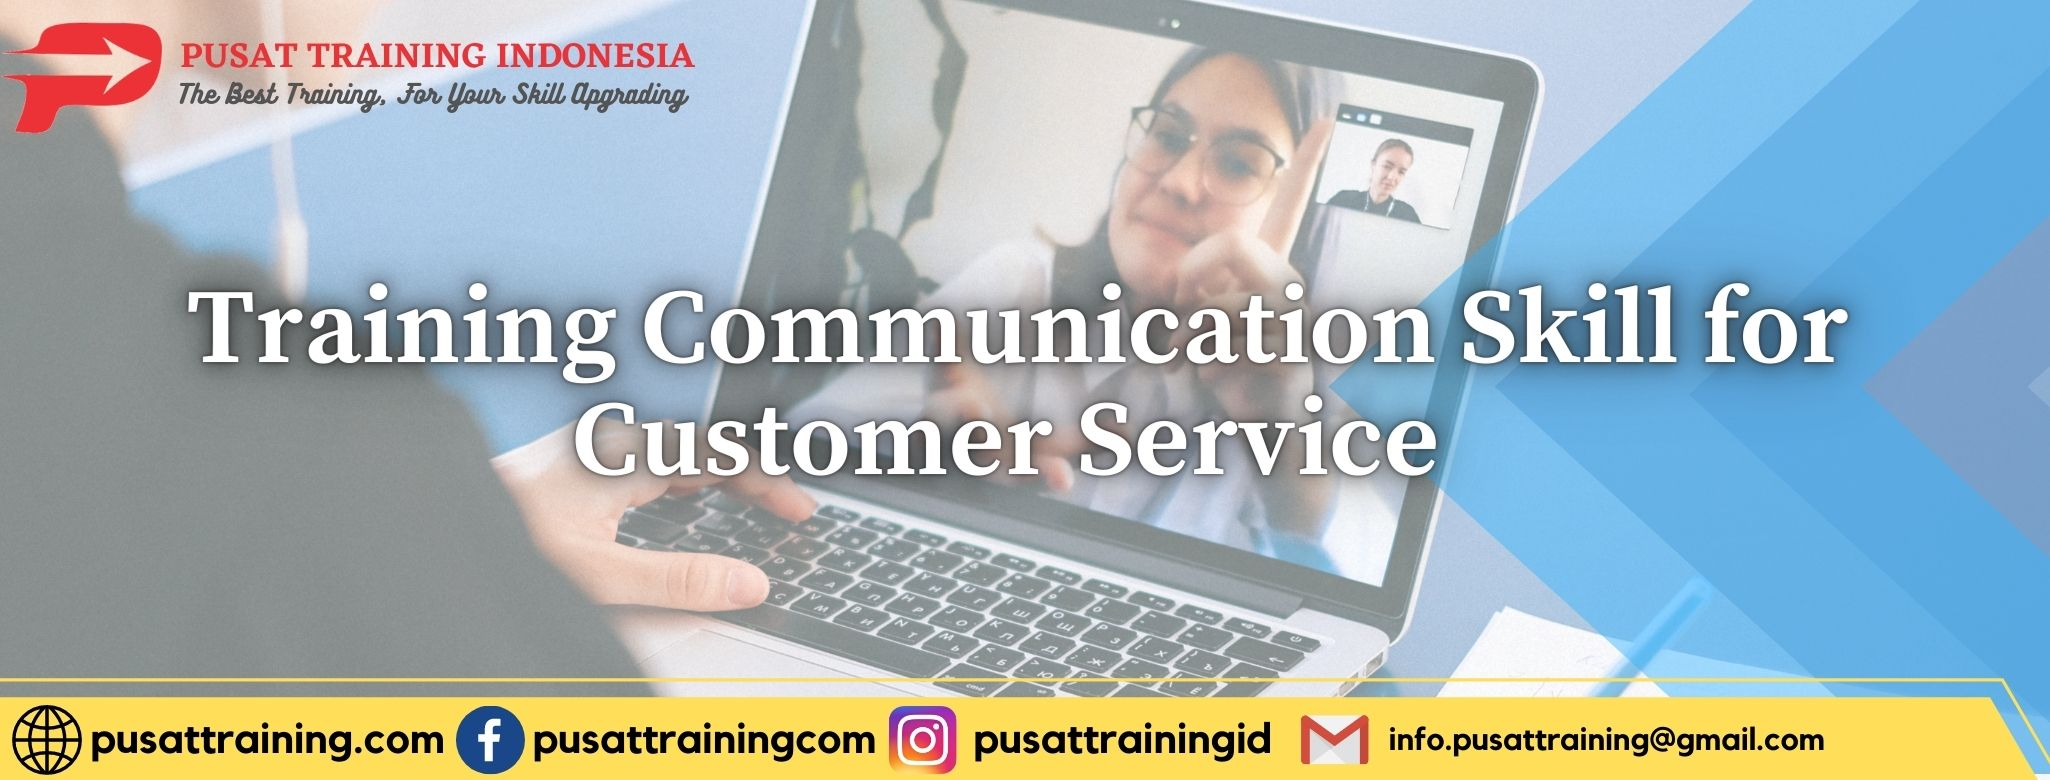 Training-Communication-Skill-for-Customer-Service